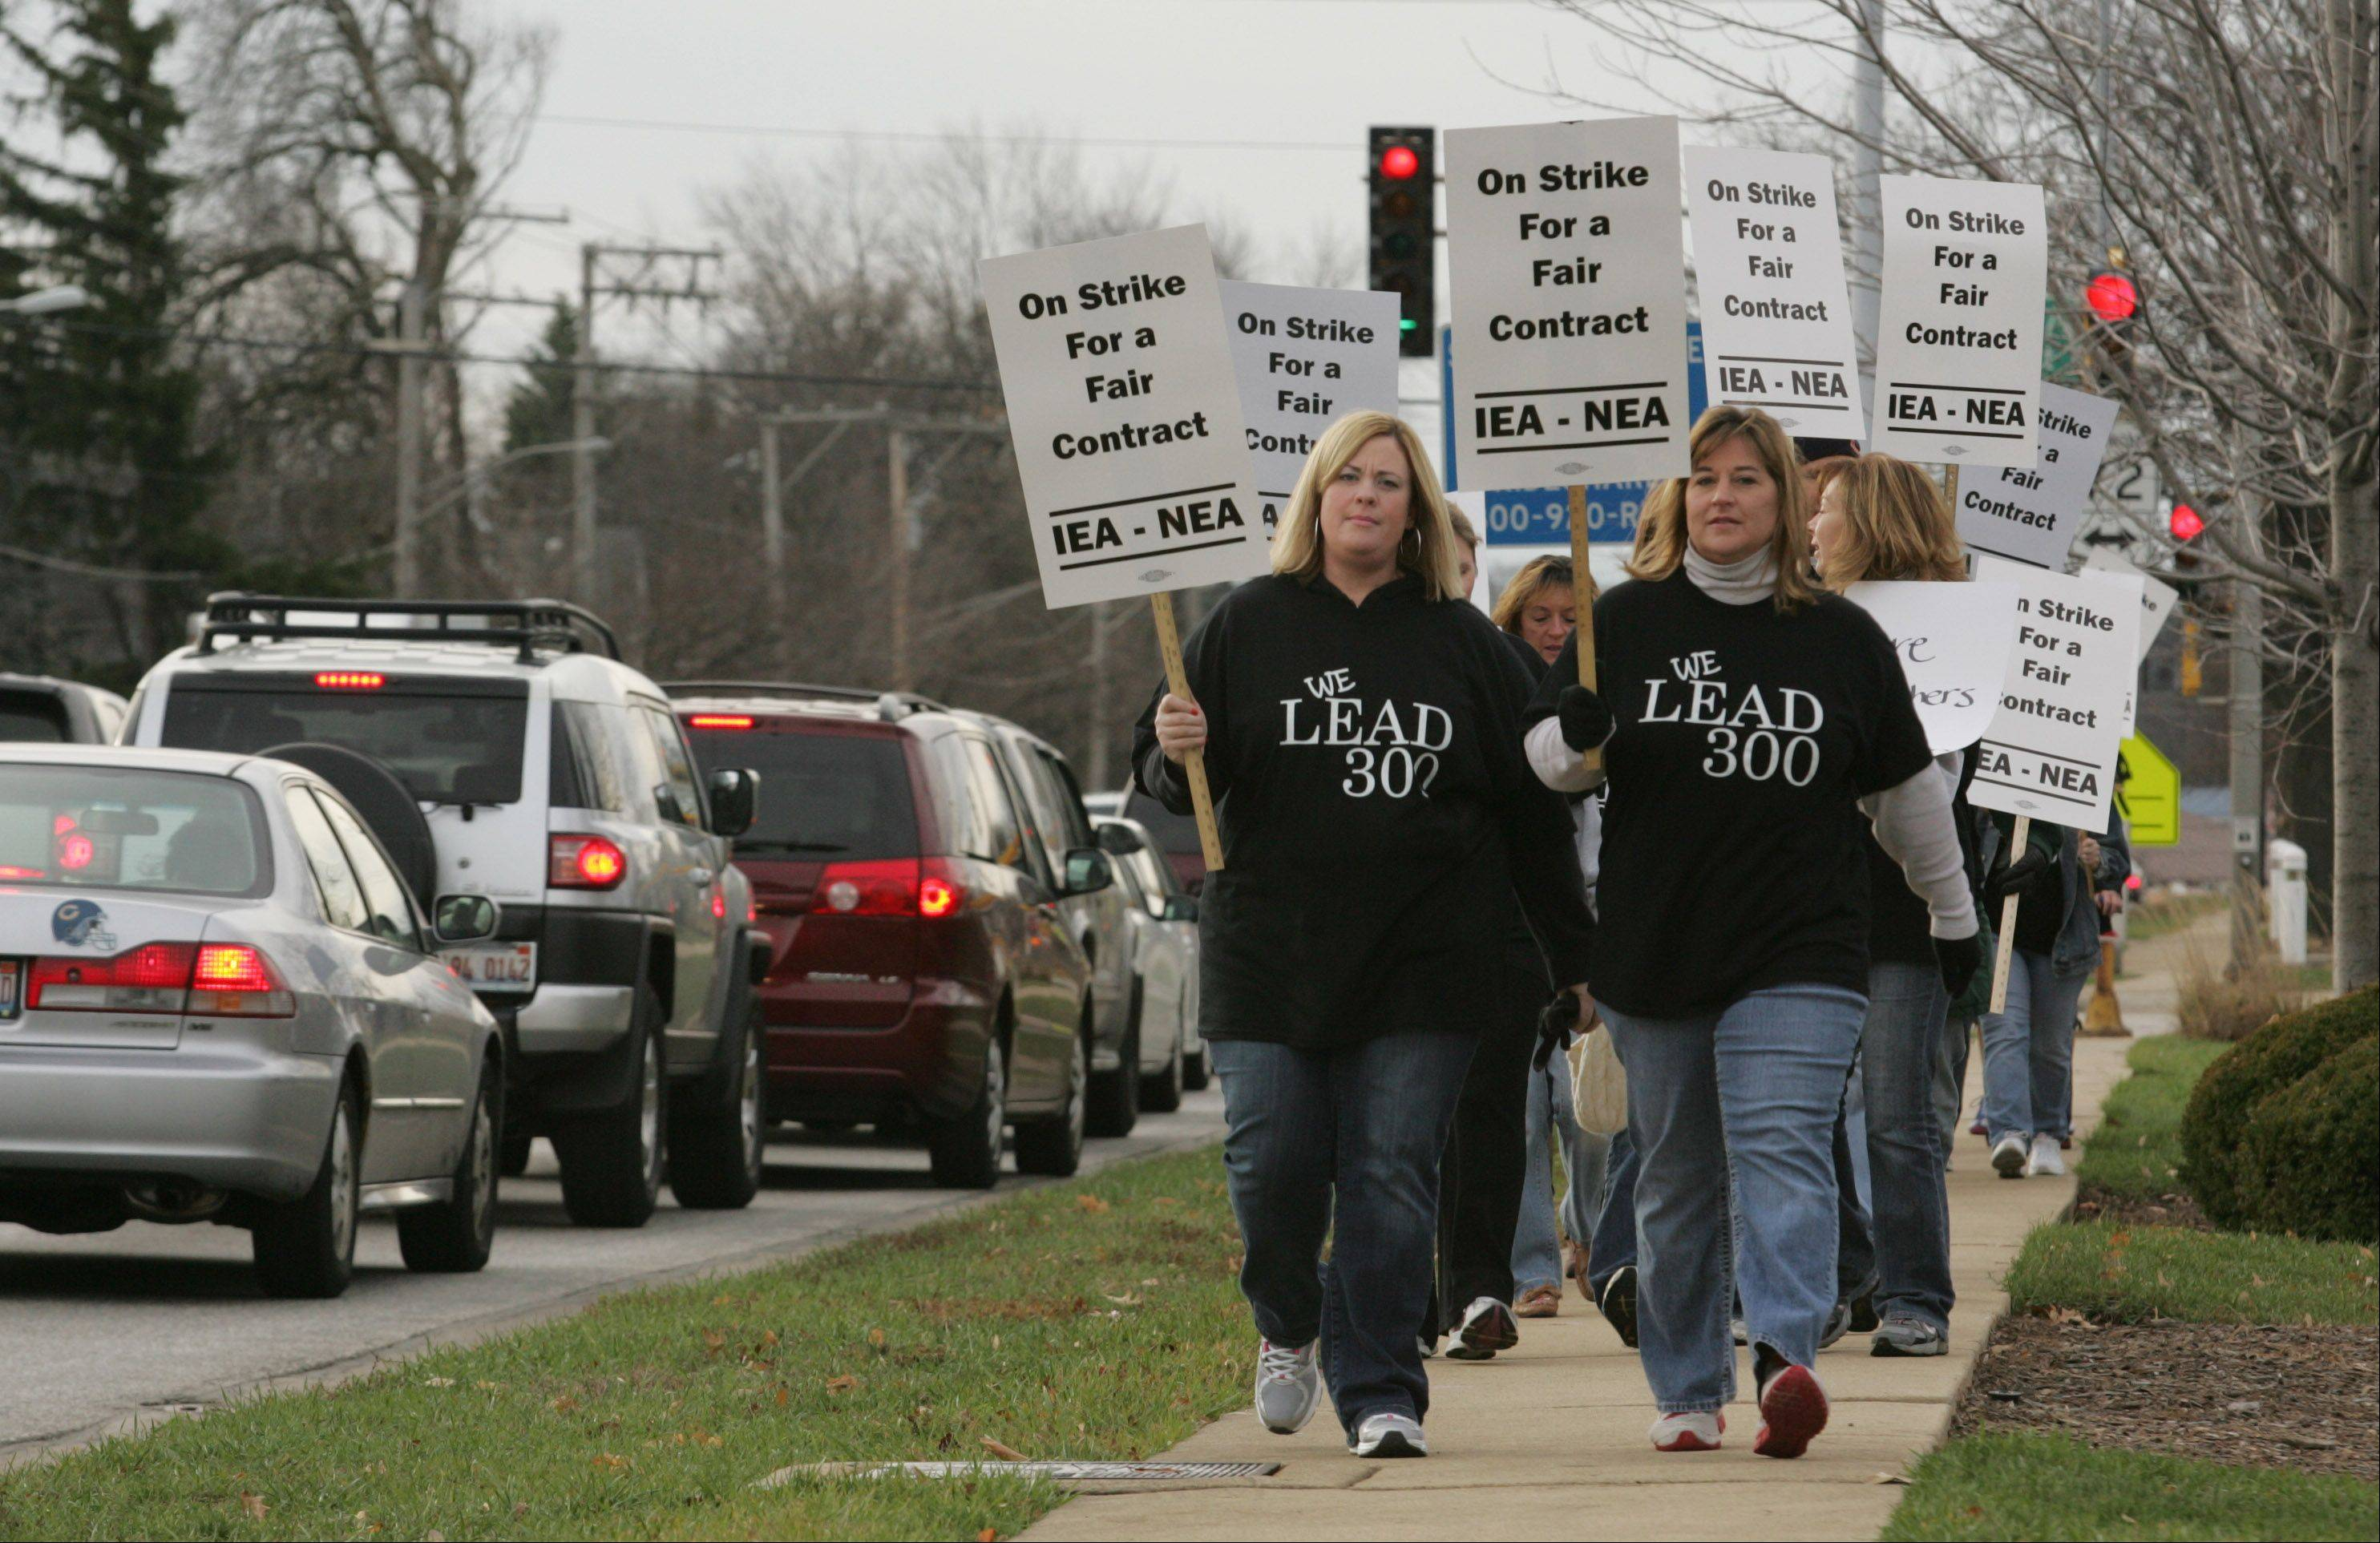 Community Unit District 300 teachers walk along Route 31 in West Dundee Tuesday morning after the teachers union went on strike.